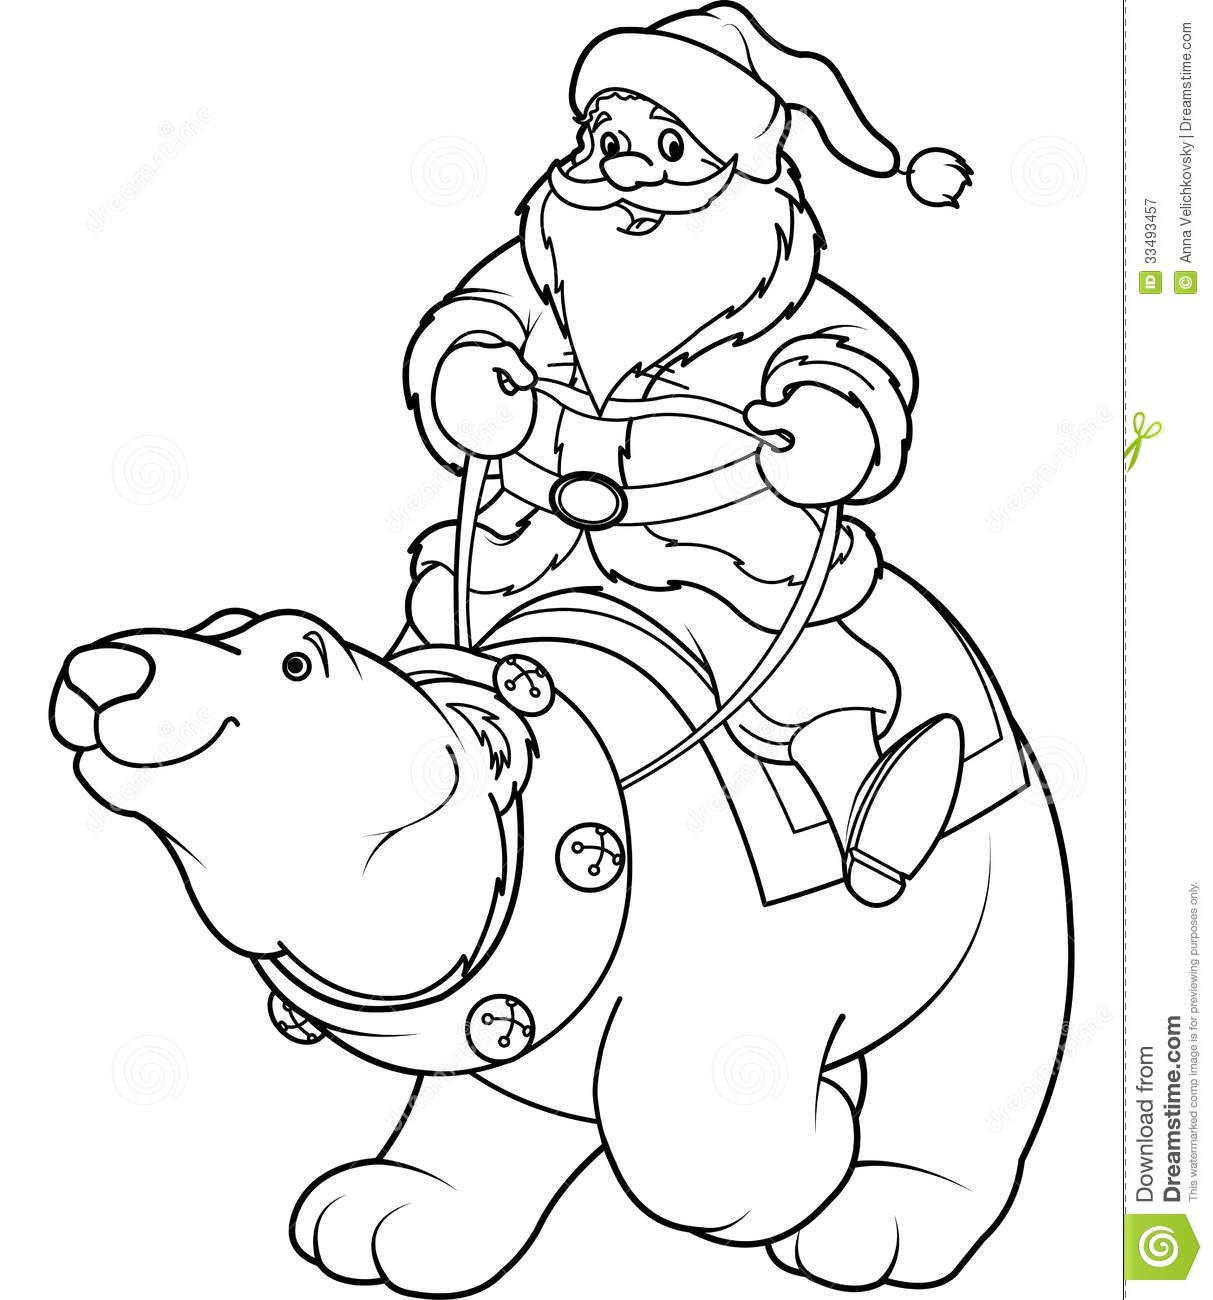 Santa Claus Riding On Polar Bear Coloring Page Royalty